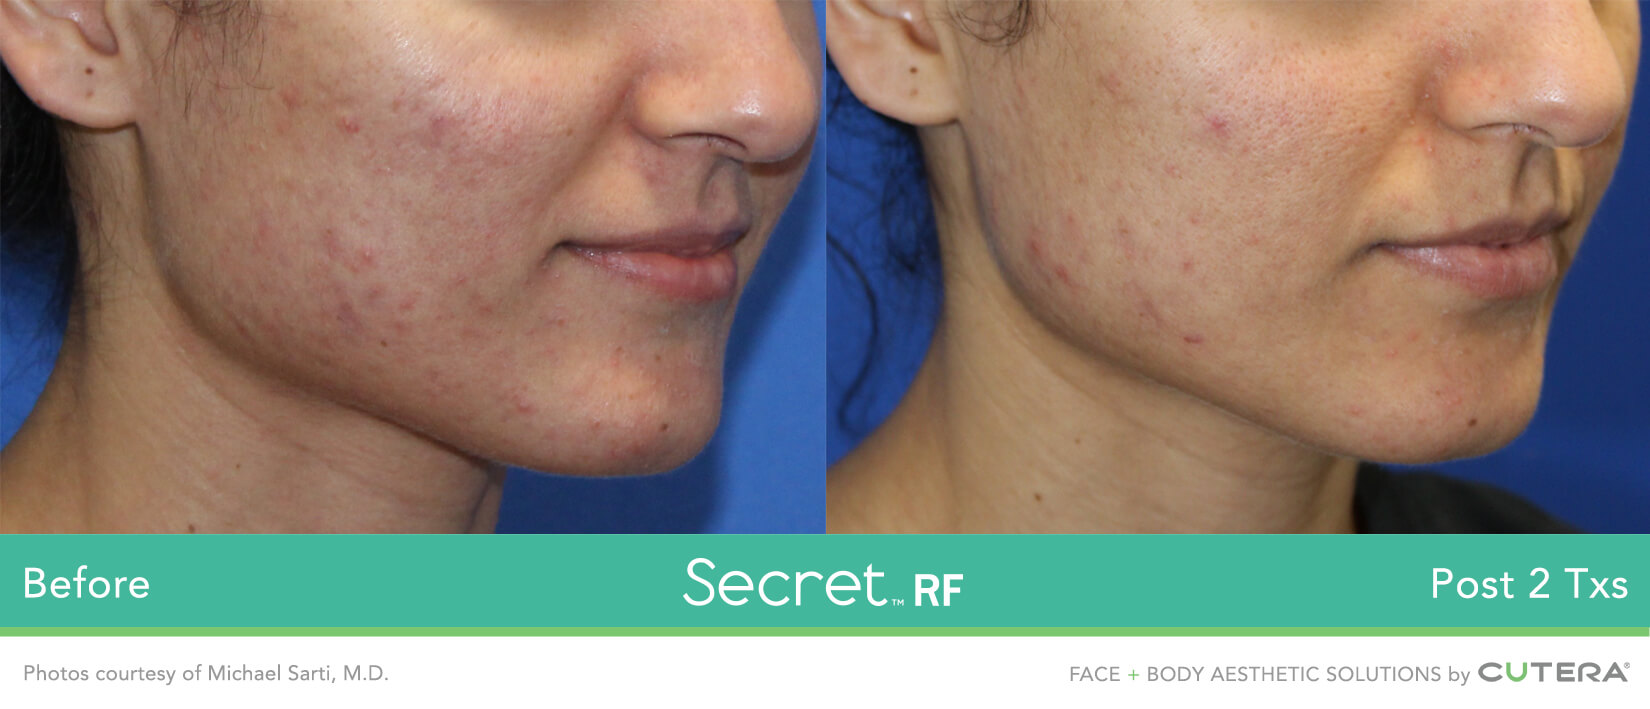 Secret RF Microneedling Before and After of Female Acne Scar Removal Treatment Miami Skin Spa